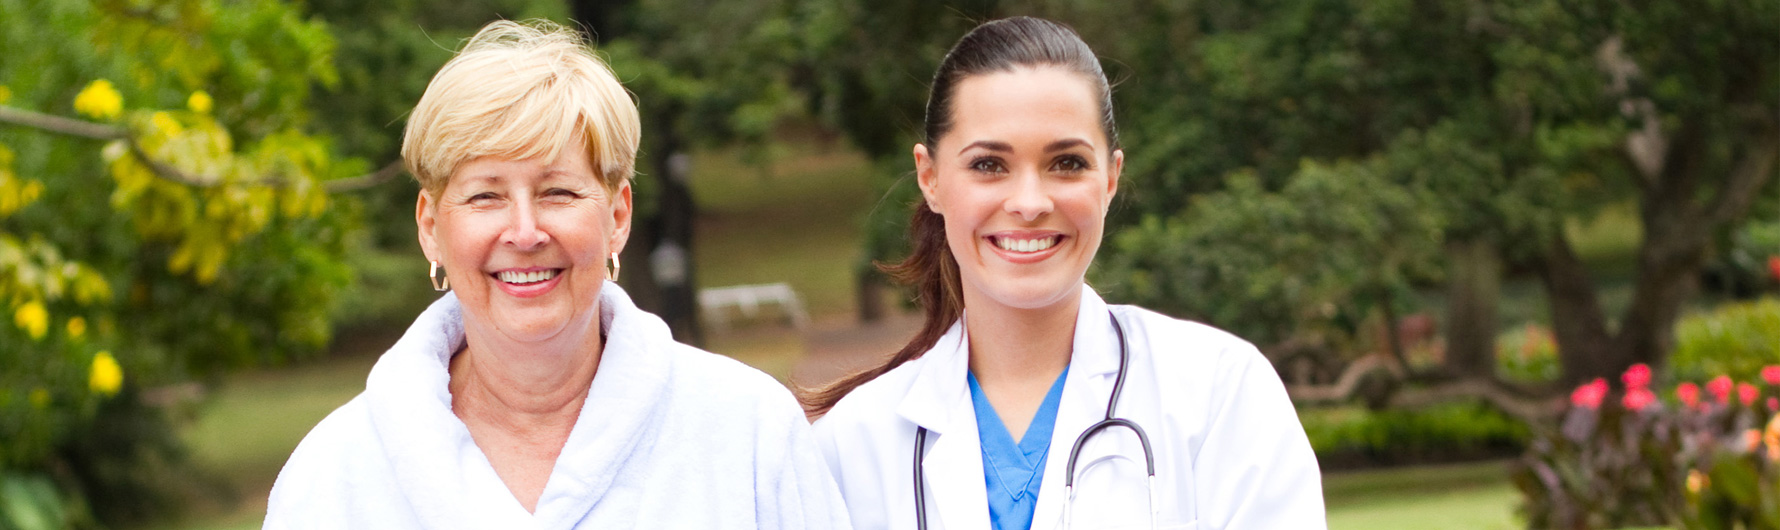 General physiatry in White Plains, NY